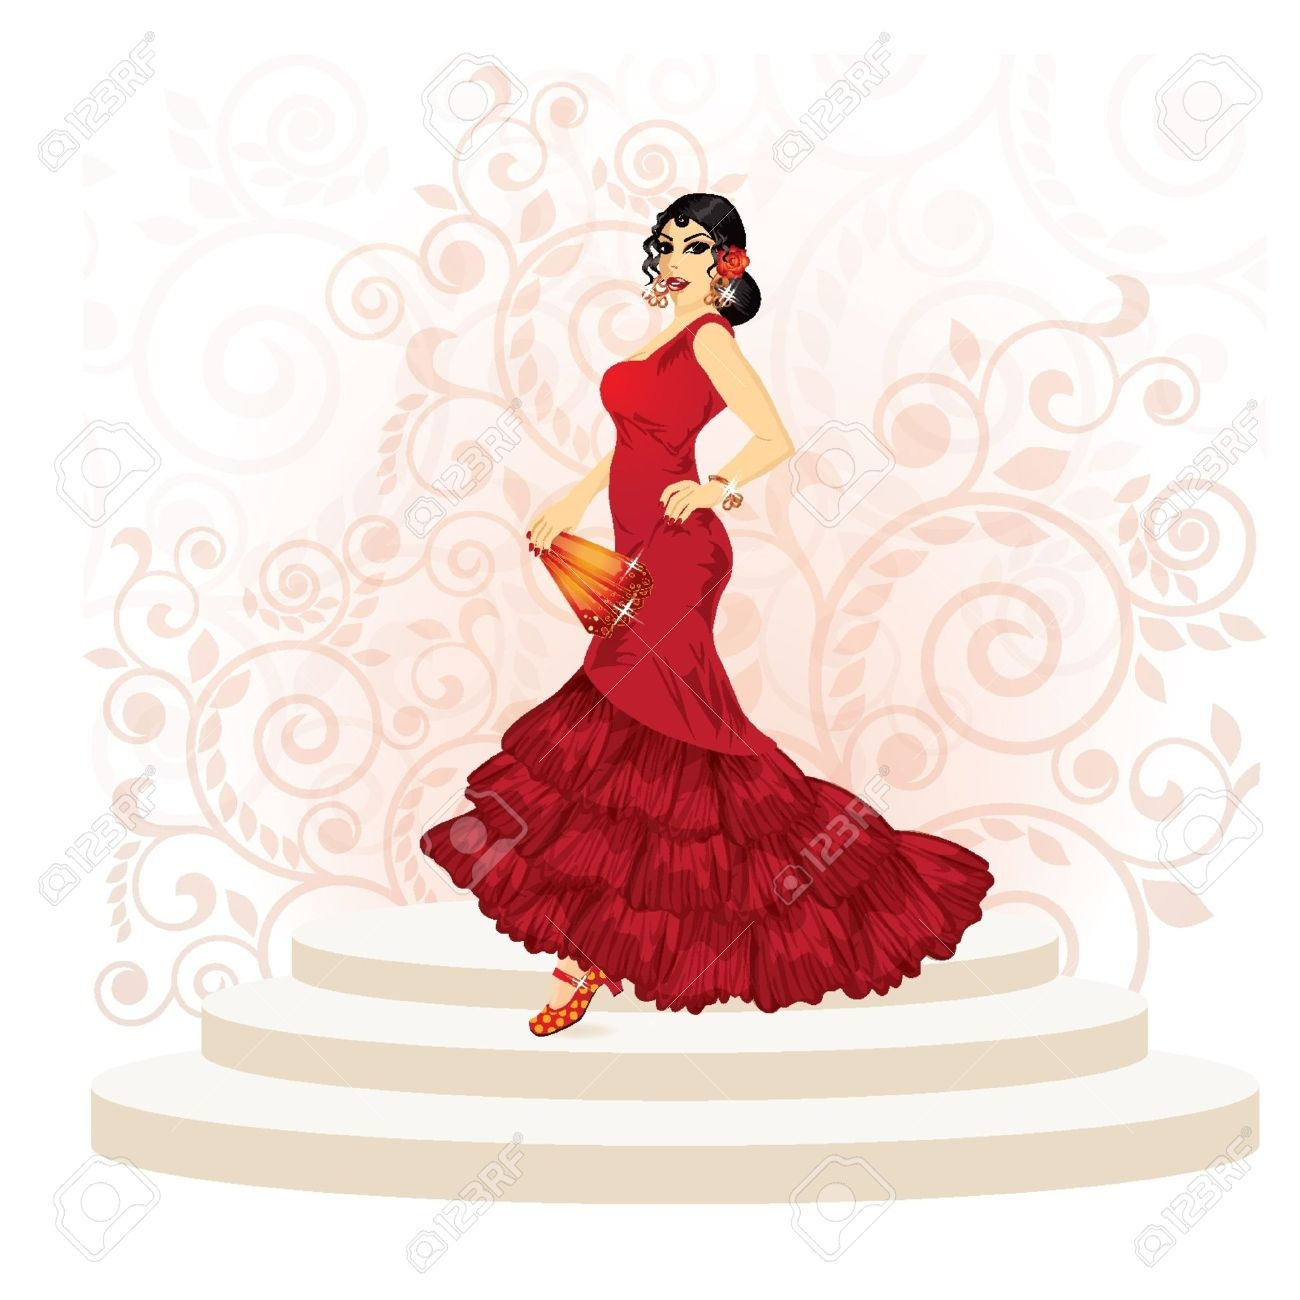 Spanish clipart spanish dance Download Spanish Clipart Art Clip